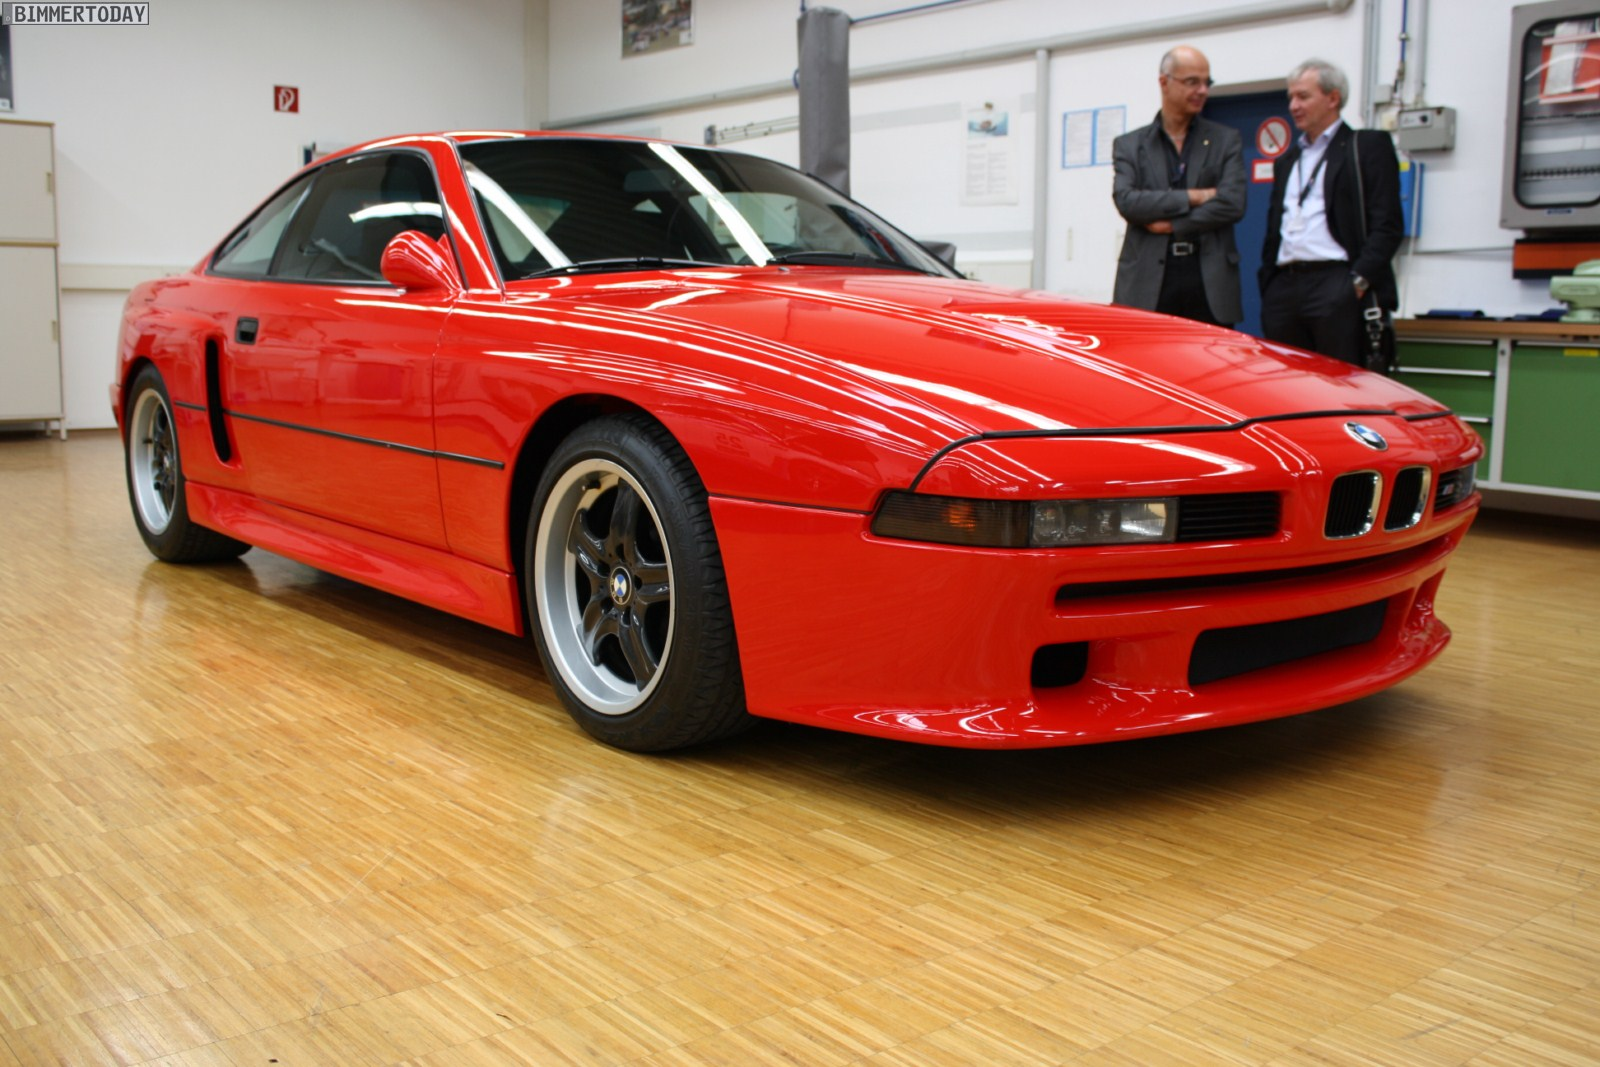 Bmw M8 E31 1990 Old Concept Cars